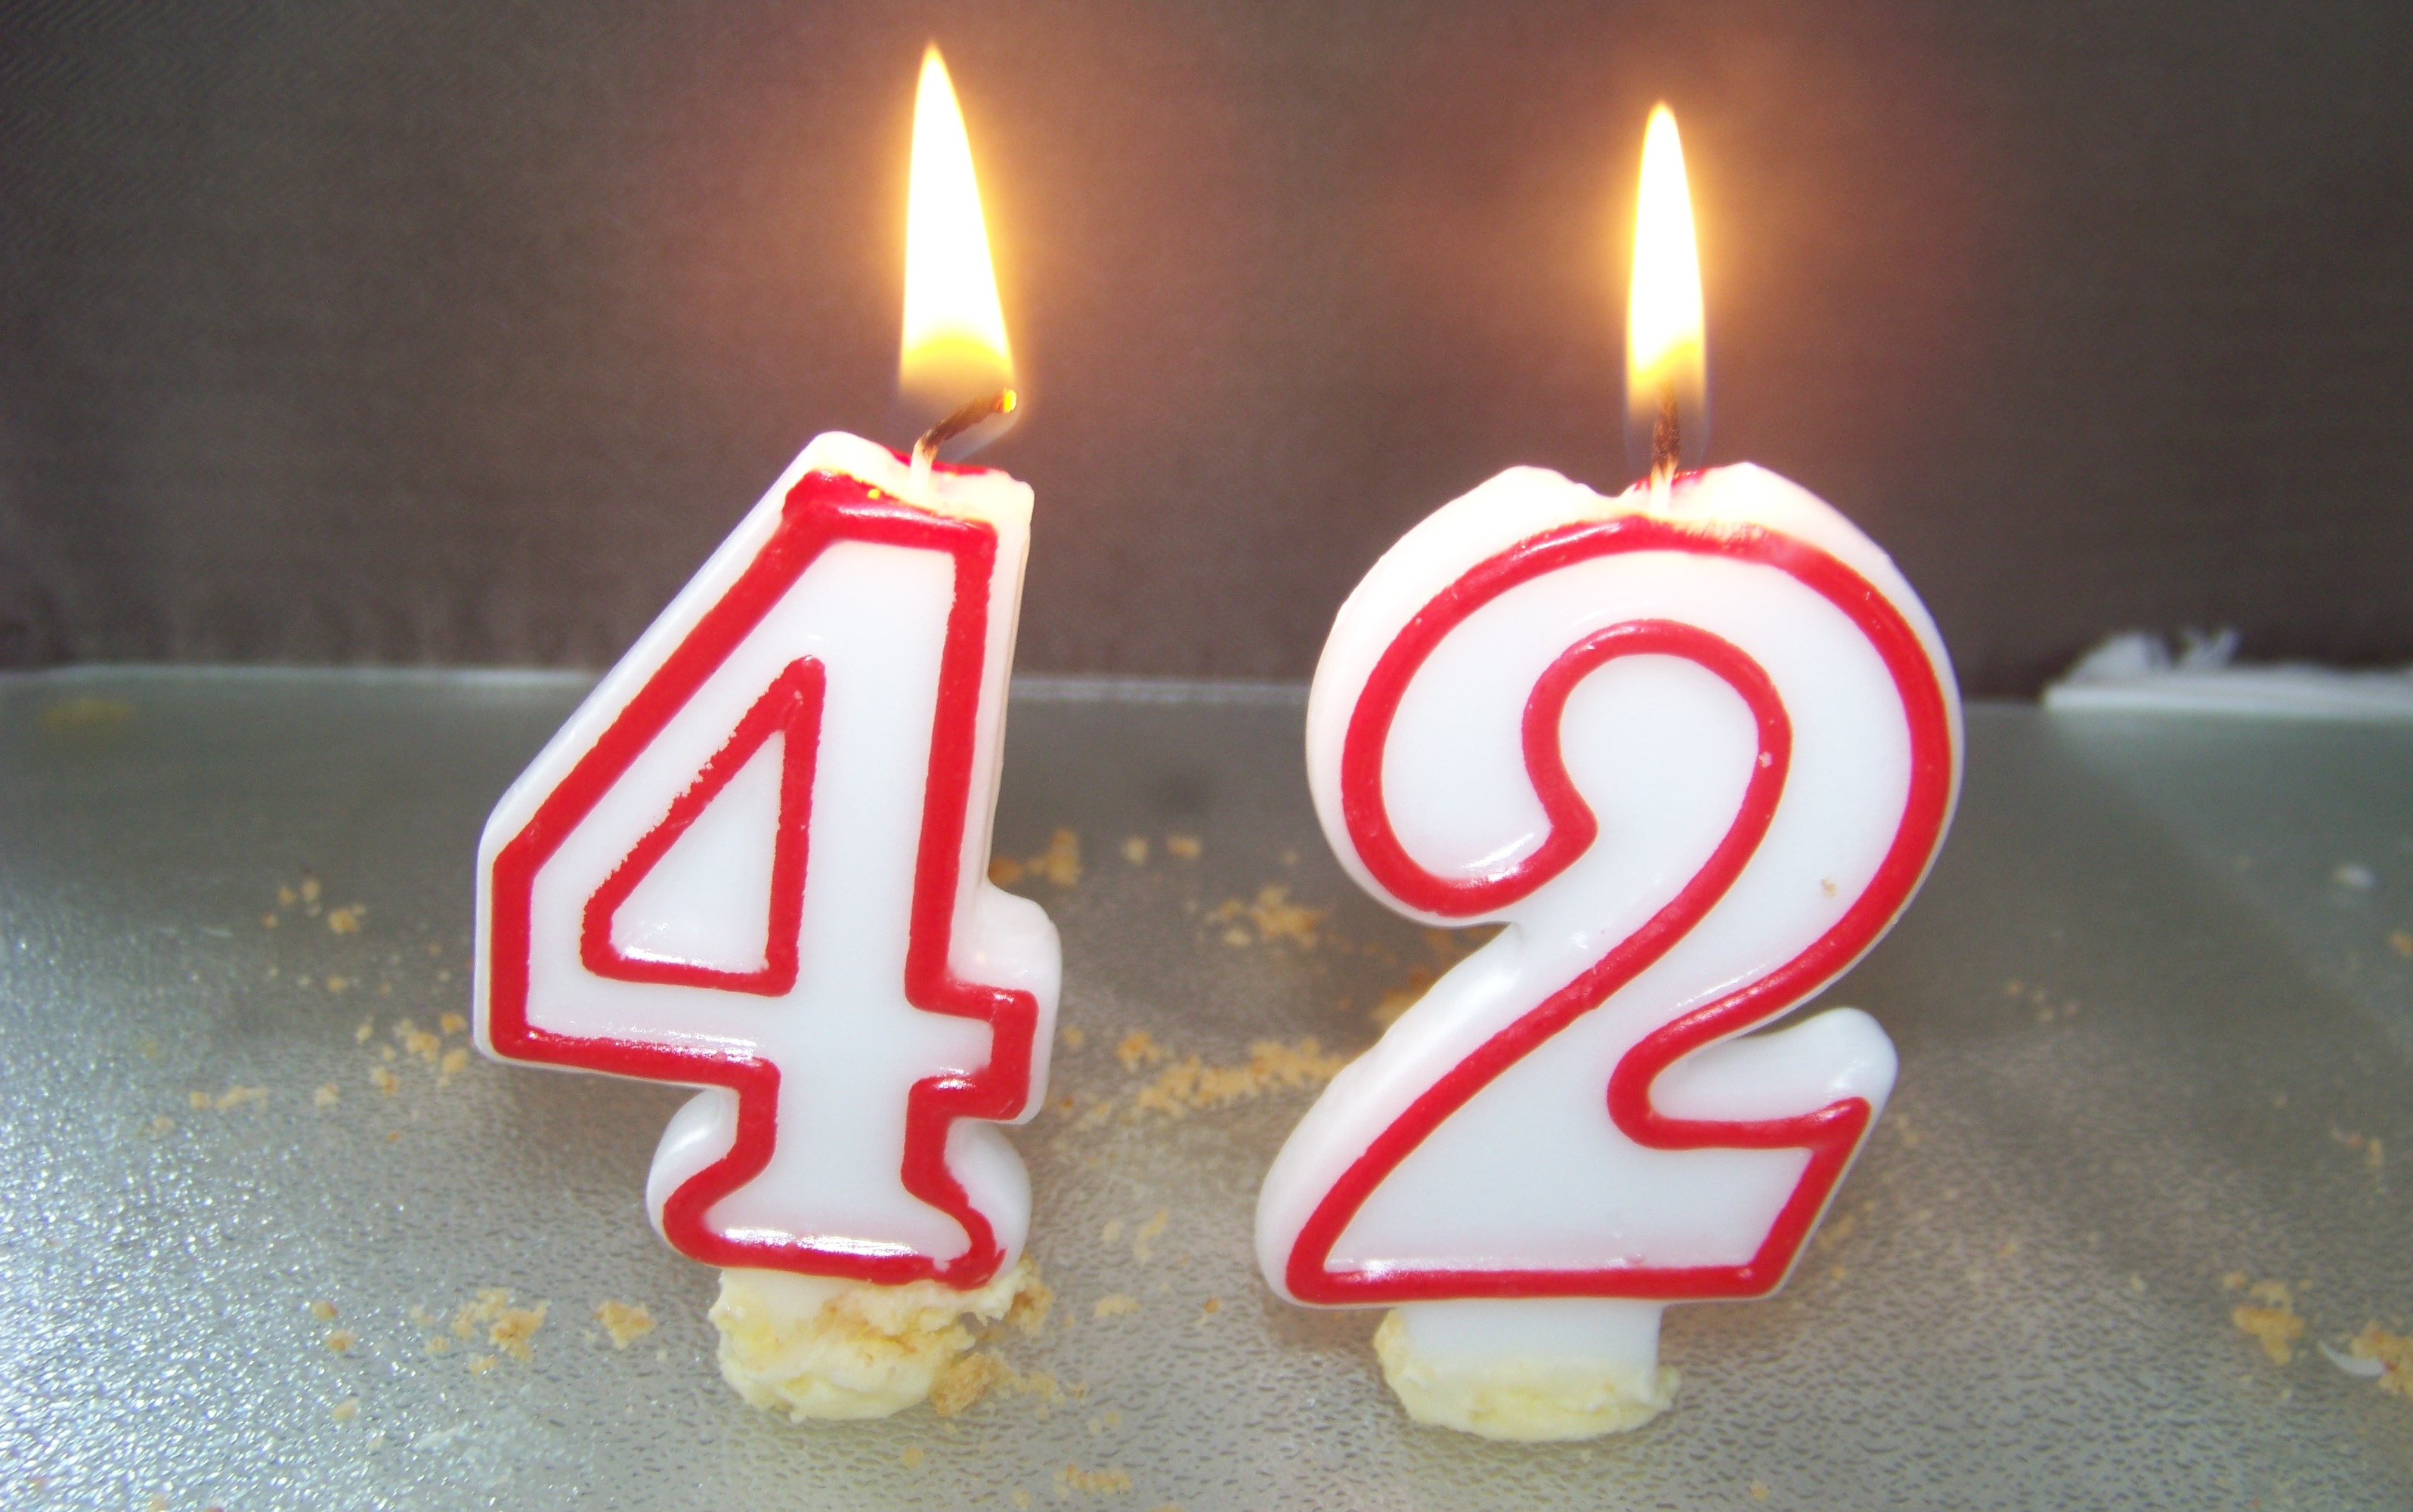 Candles On Birthday Cake Meaning